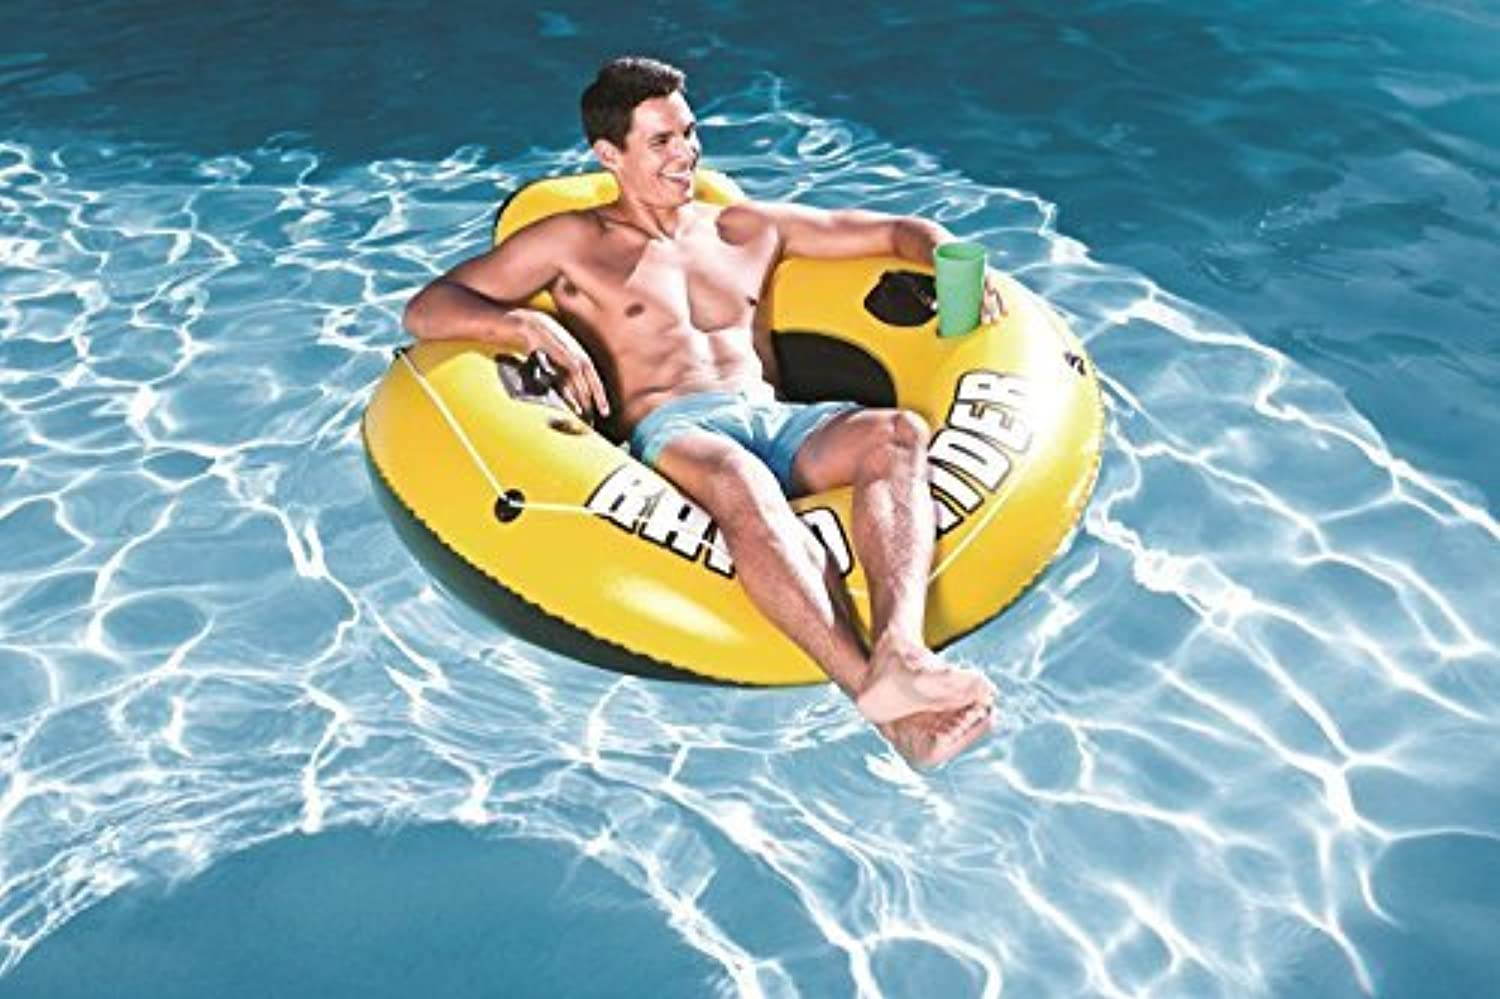 Bestway Rapid Rider I 53 Inflatable Floating Pool Raft Tube (2-Pack) by Swimming Pool Inflatable Rafts